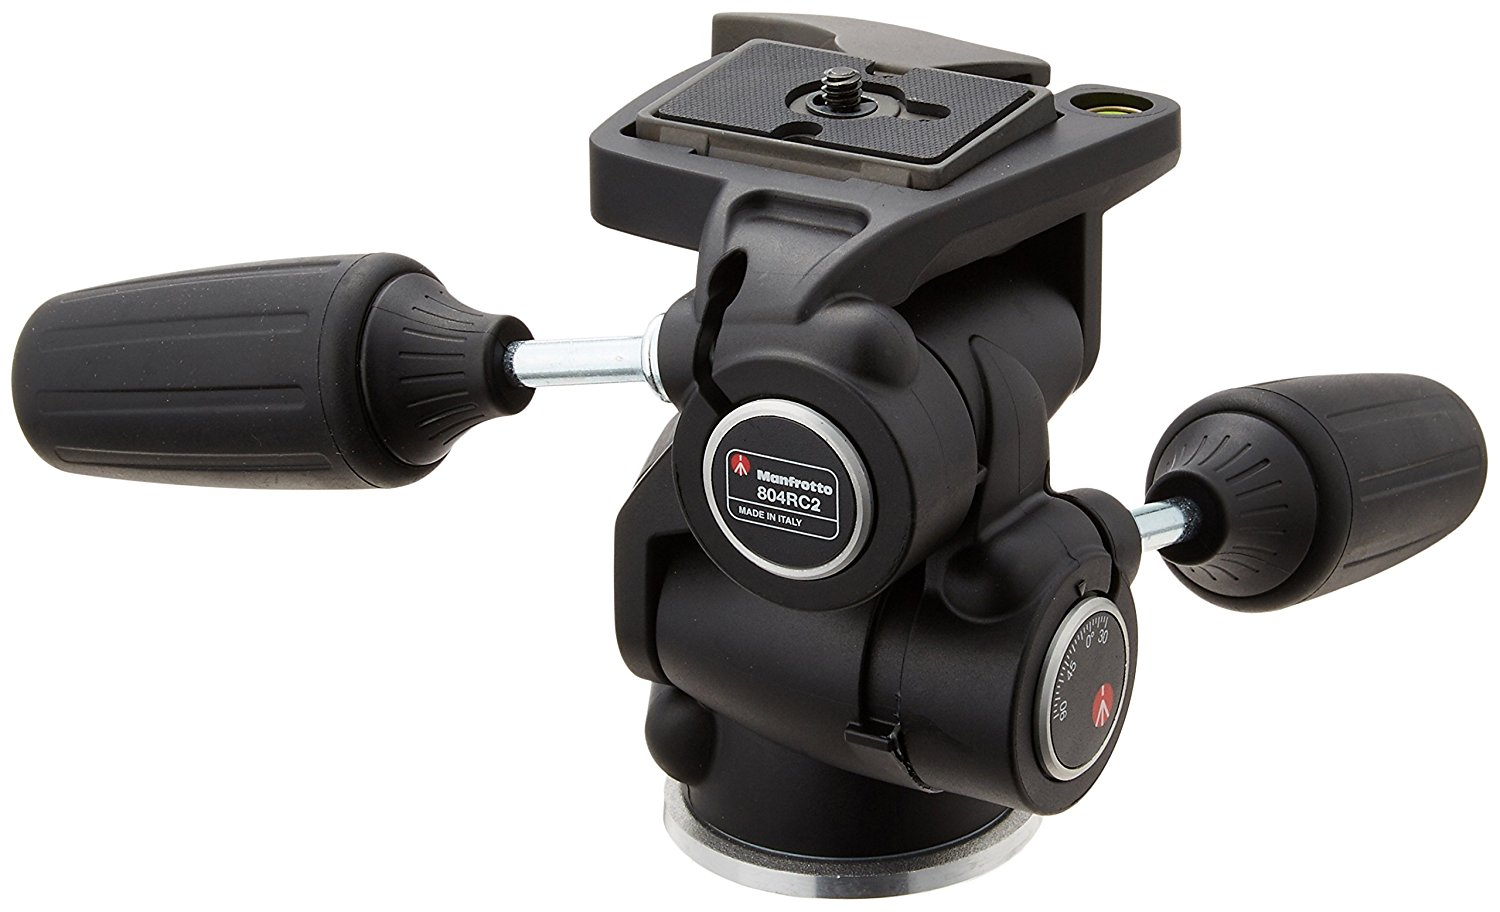 Manfrotto 804RC2 1